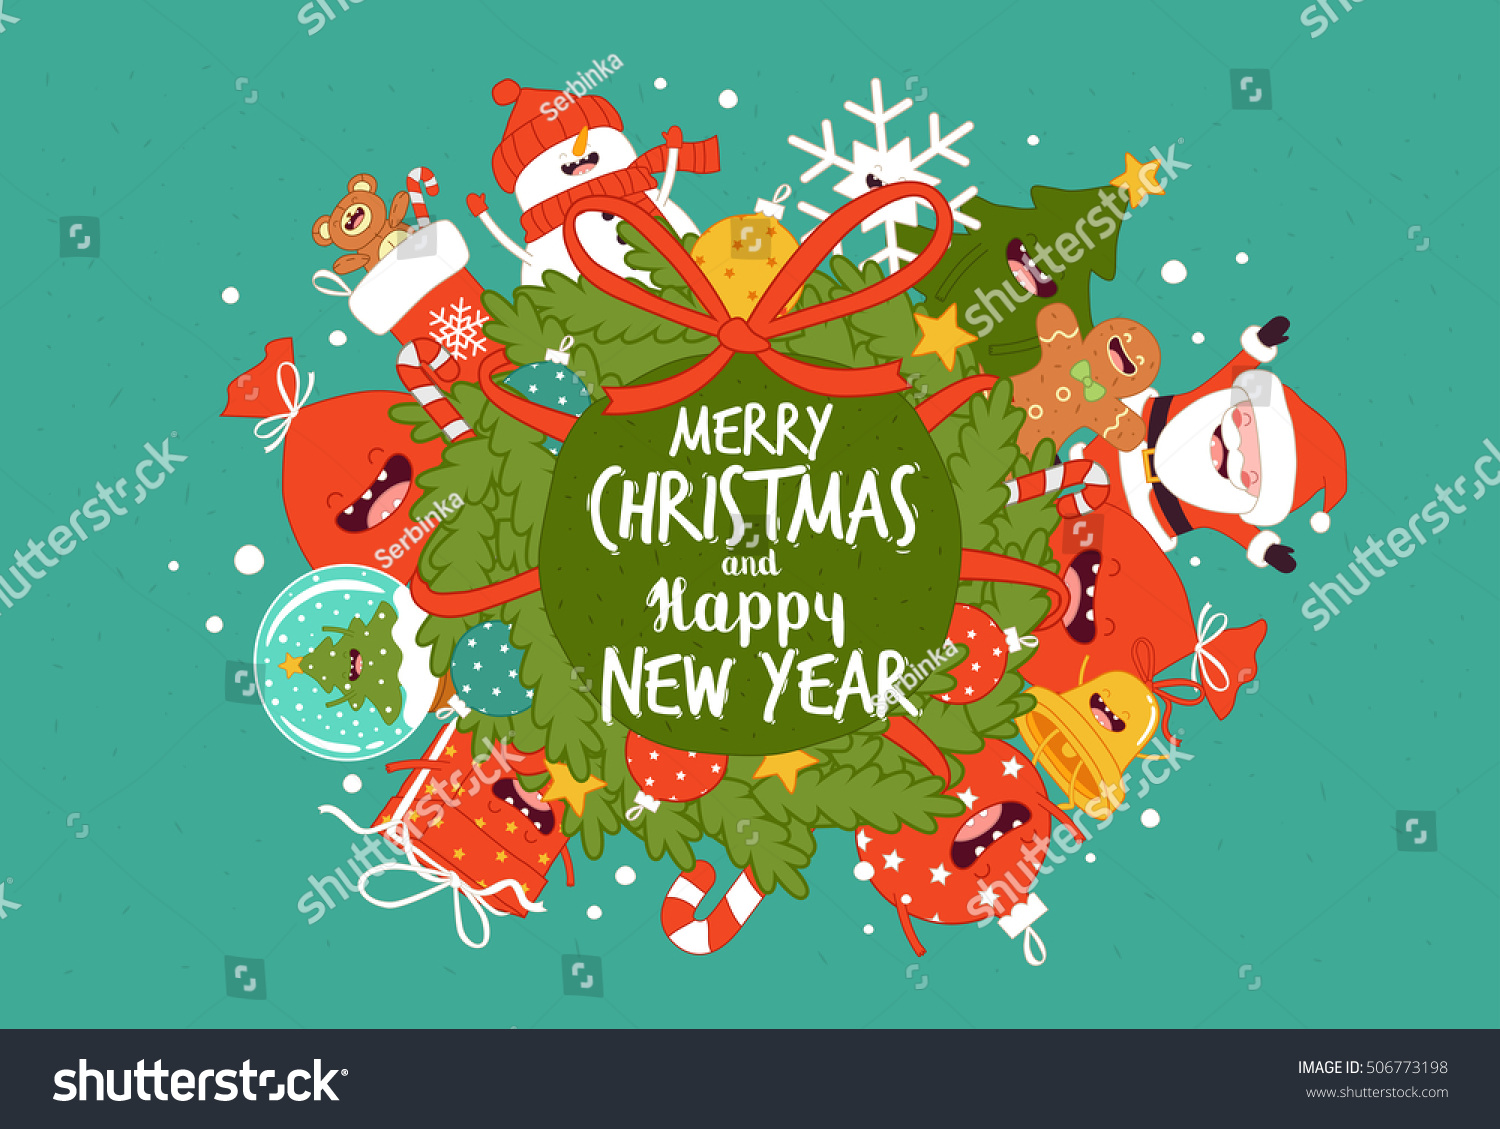 greeting card happy new year and merry christmas funny personages wishes you a happy holidays